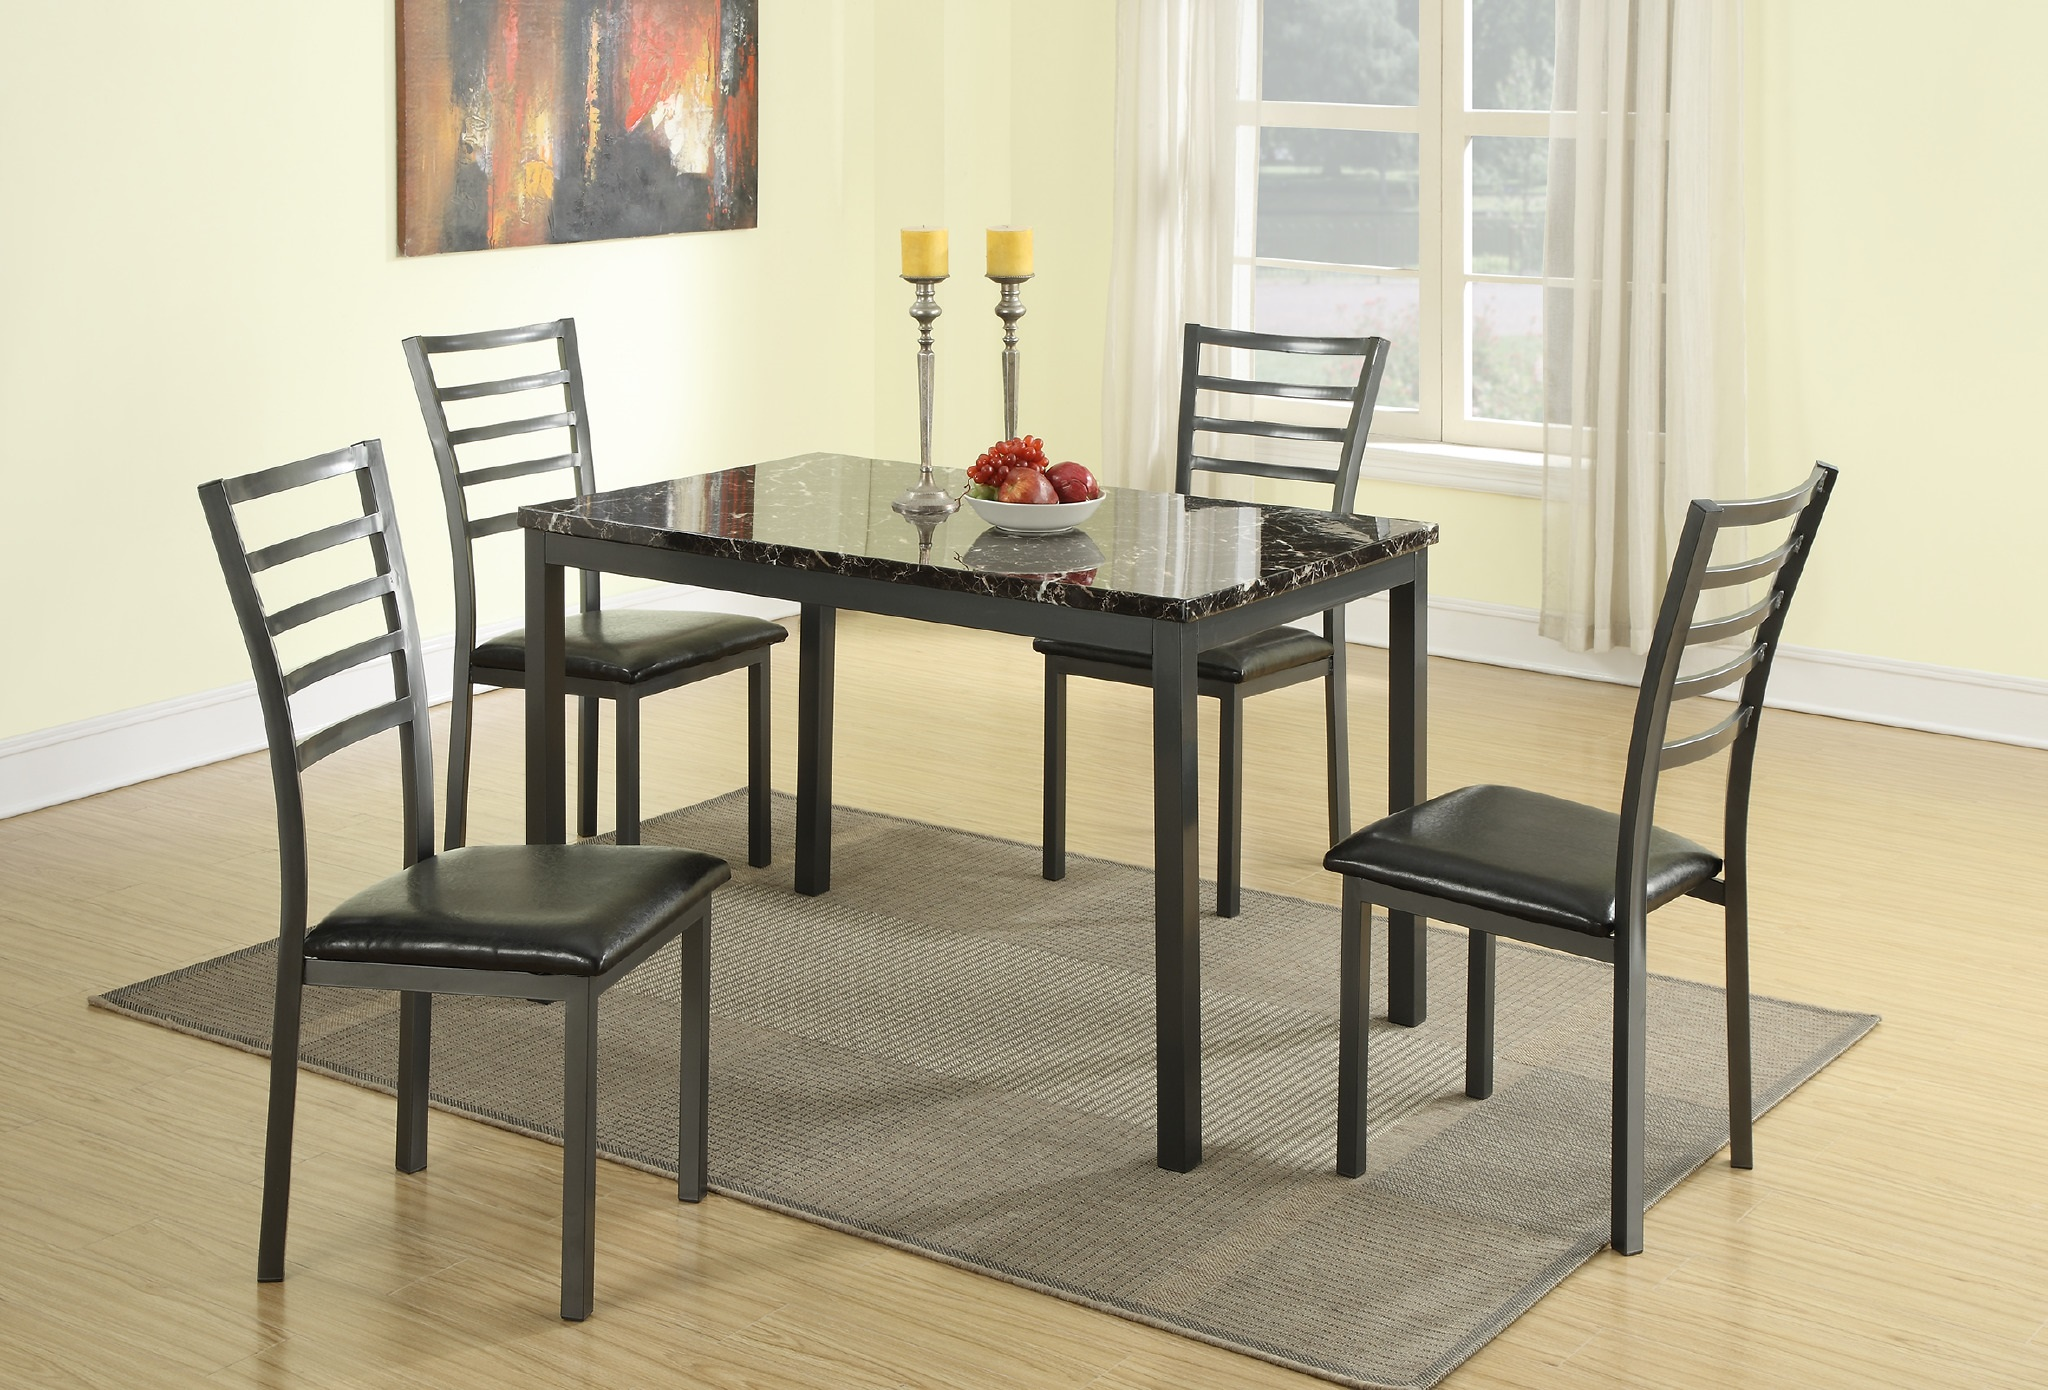 Metropolitan 5 PCs Metal Dining Table Set